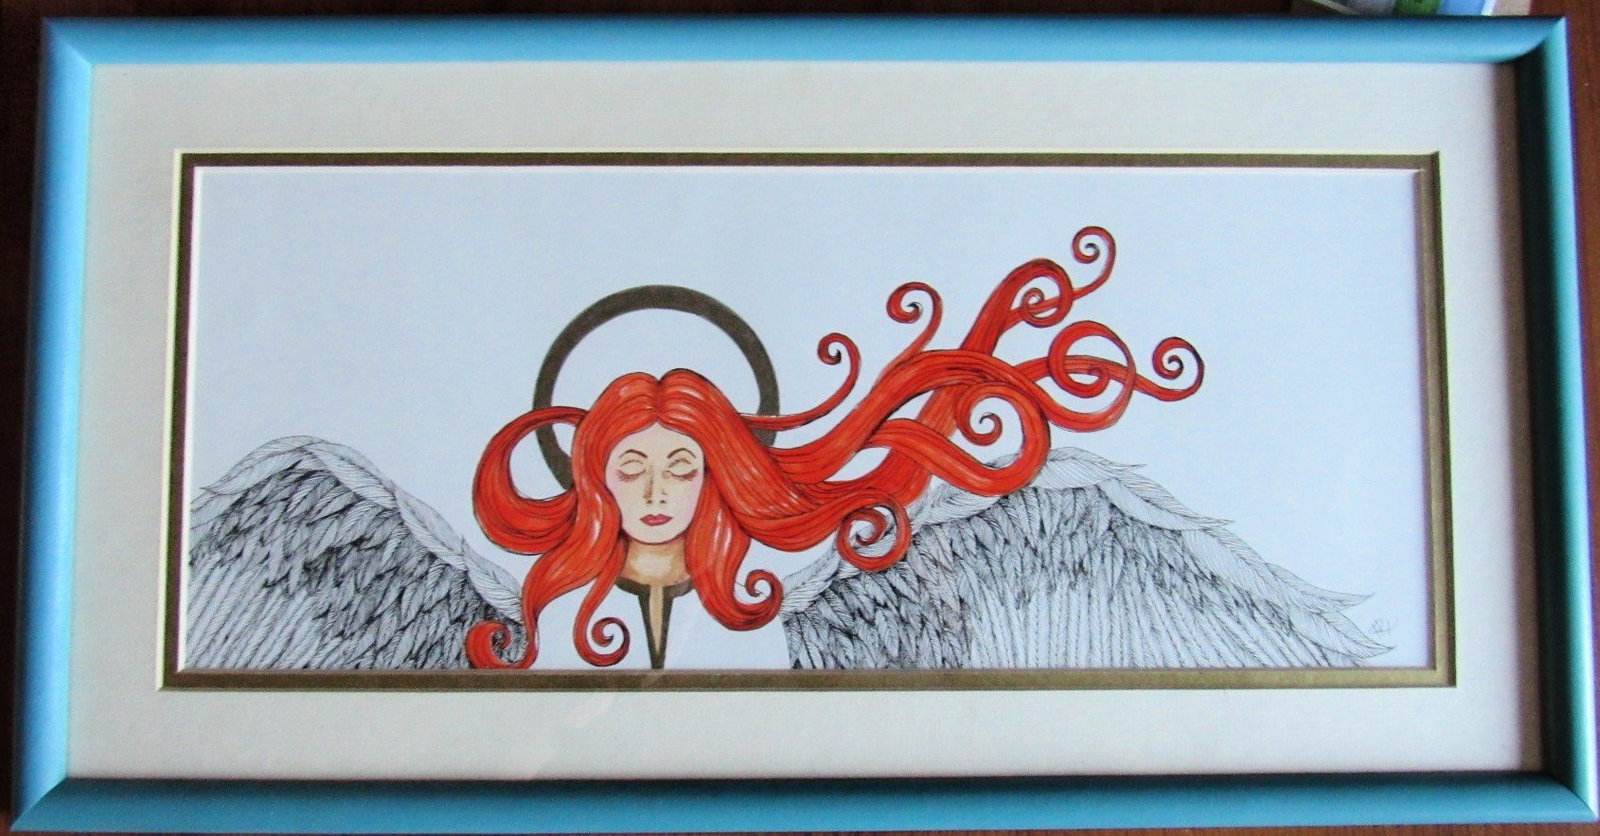 Red Hair, Angel, Irish, Original Pen and Ink Art, Framed,  Good Will, Peace,